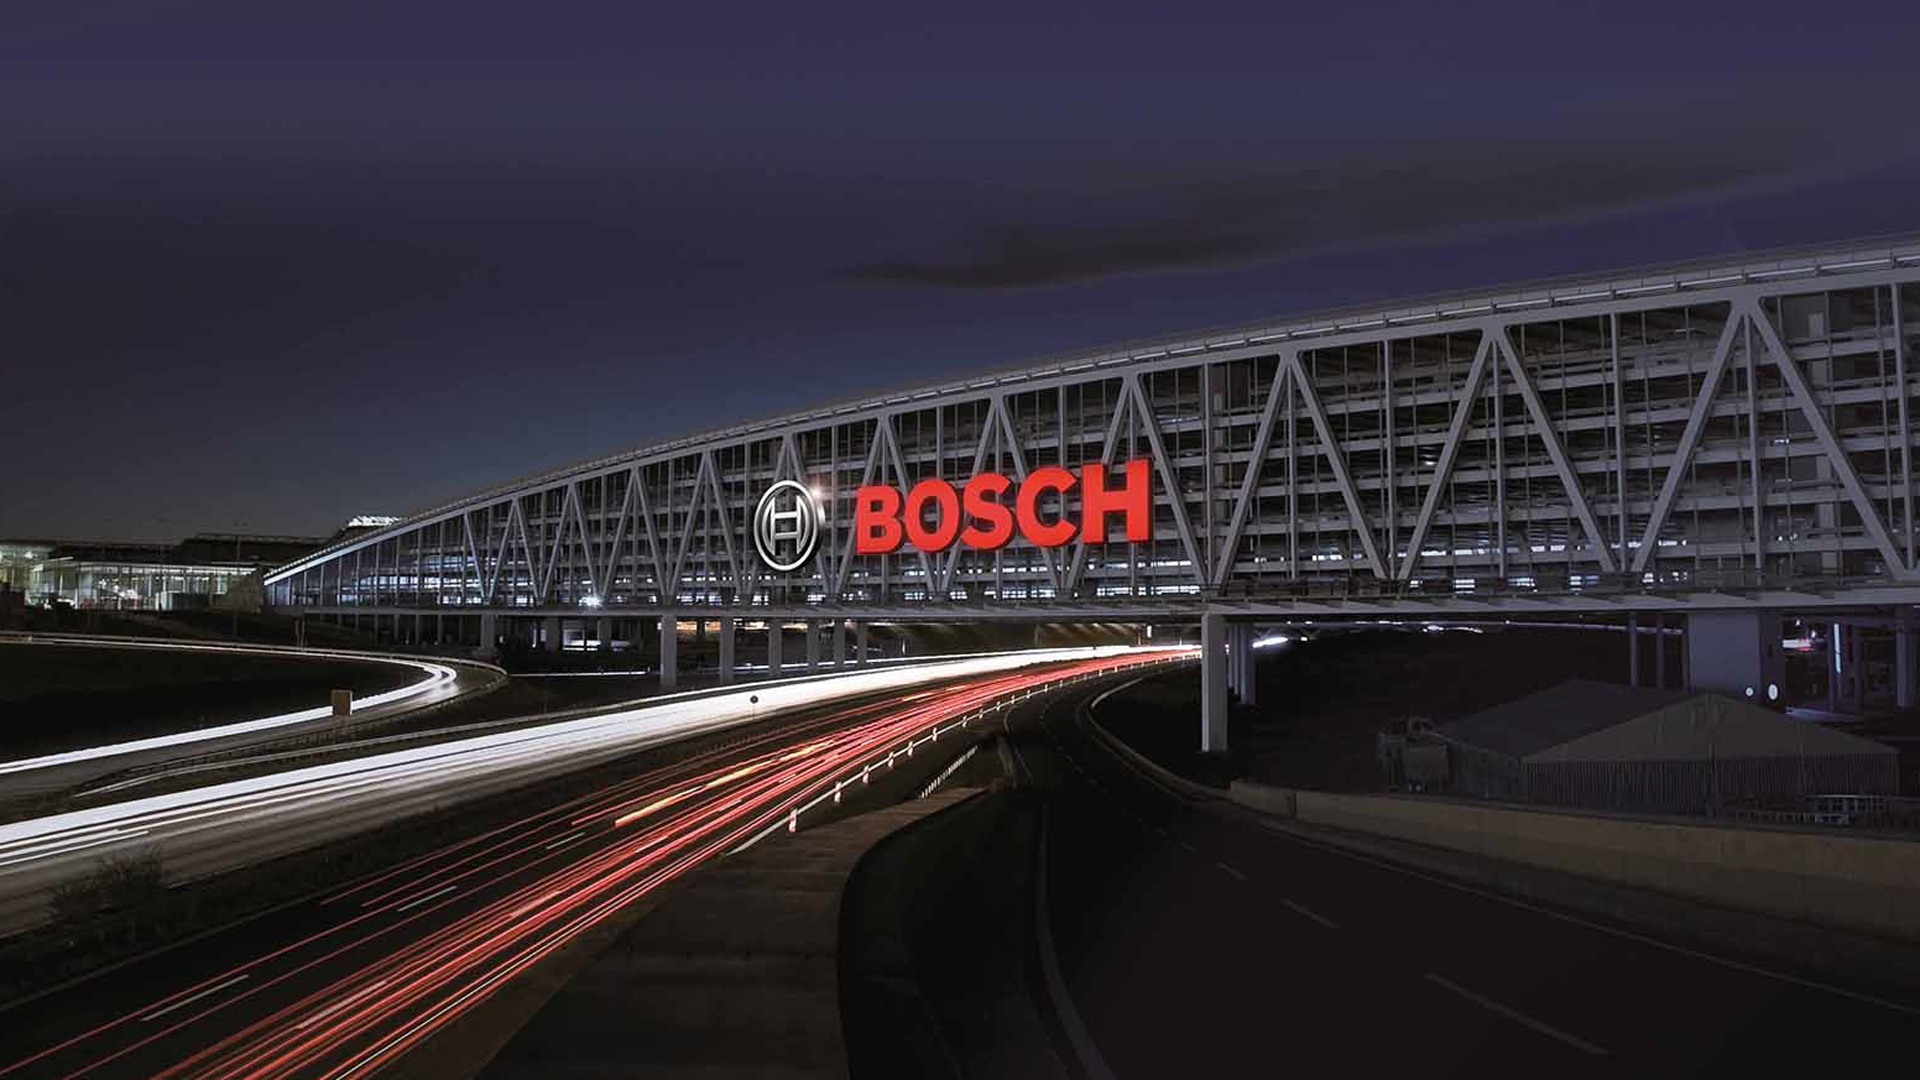 Bosch Leading The Race In Developing Self-Driving Car Technologies